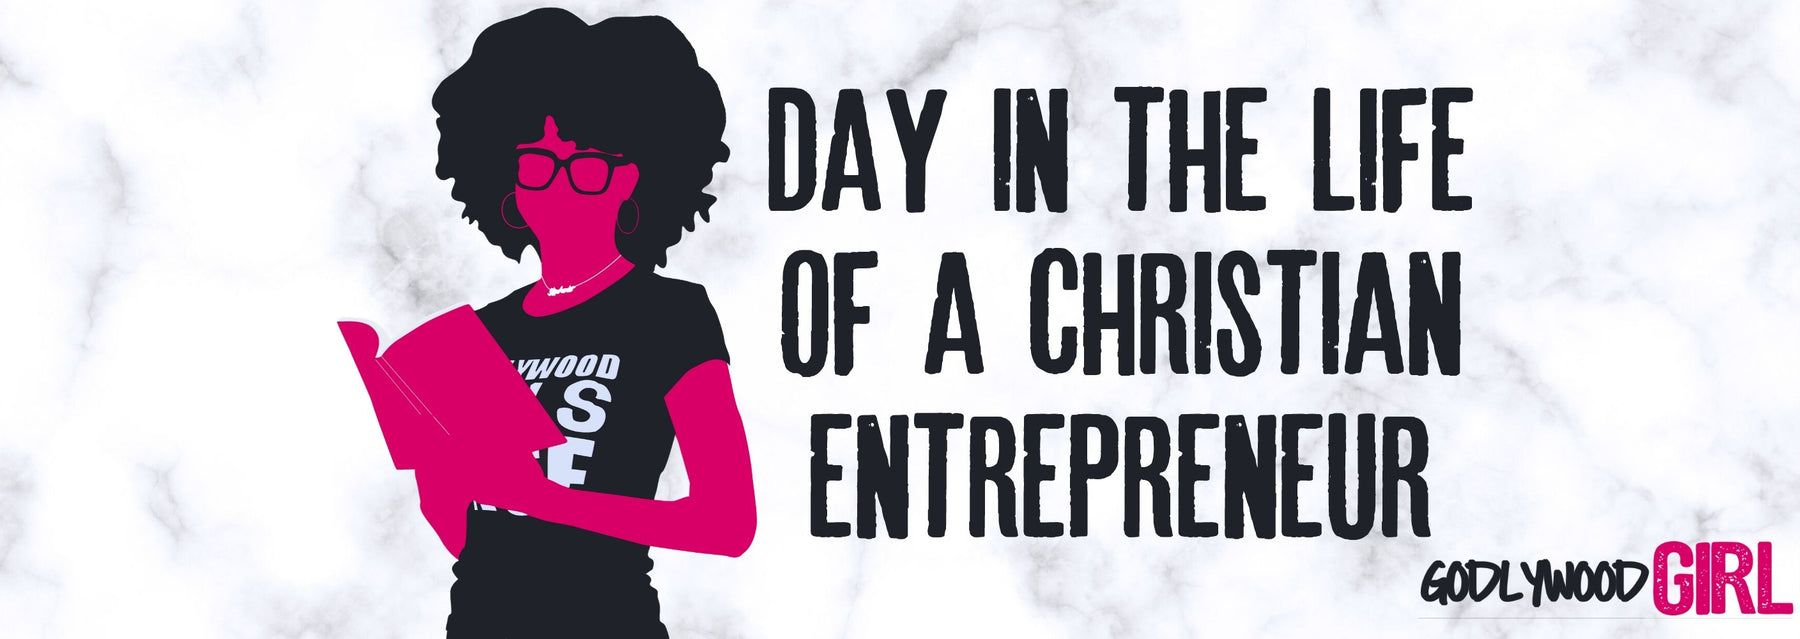 Day In The Life Of A Christian Entrepreneur Ep.80 | School Of Purpose 2.0 Revamp